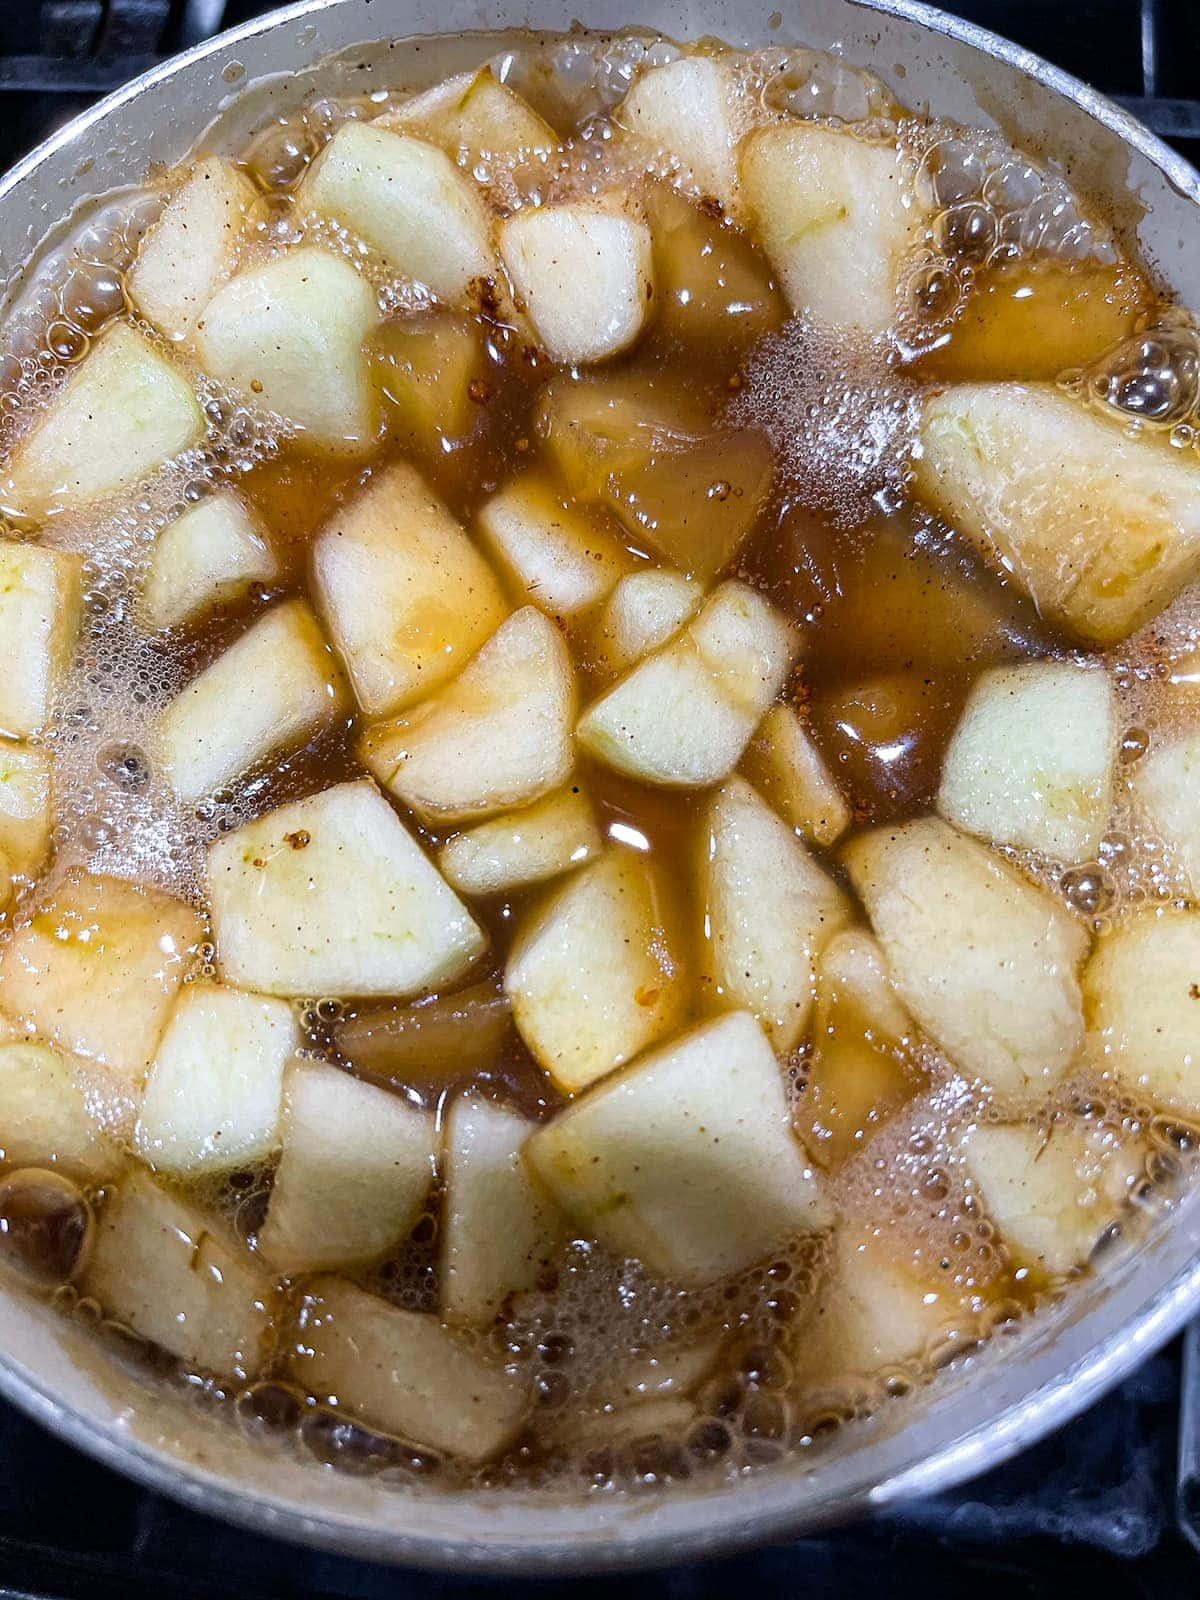 apple pie filling cooking in a pot